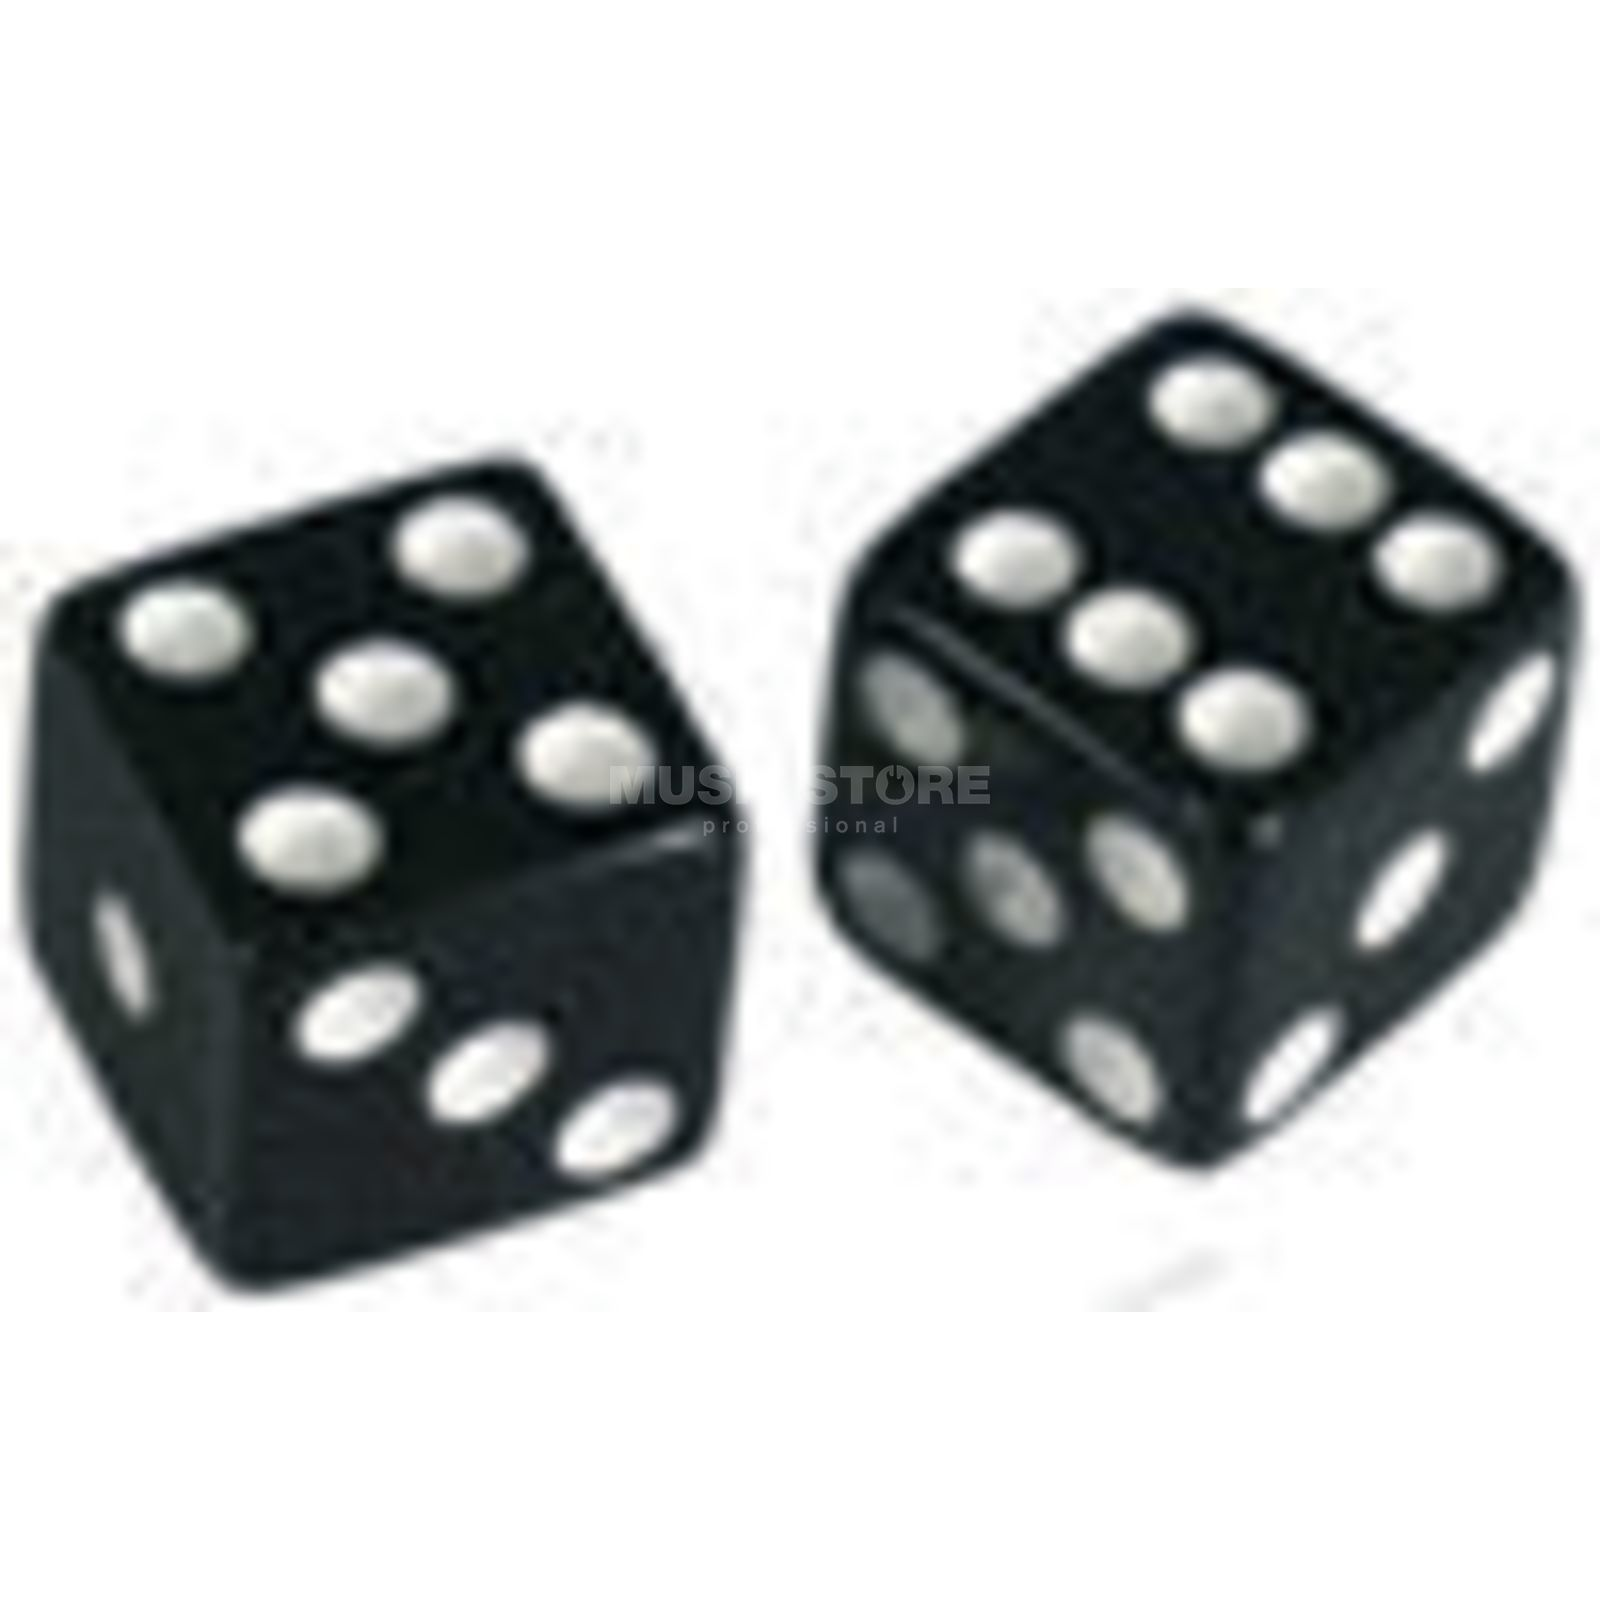 "Allparts Poti Knobs ""Dice"" Set of 2 Black Produktbild"